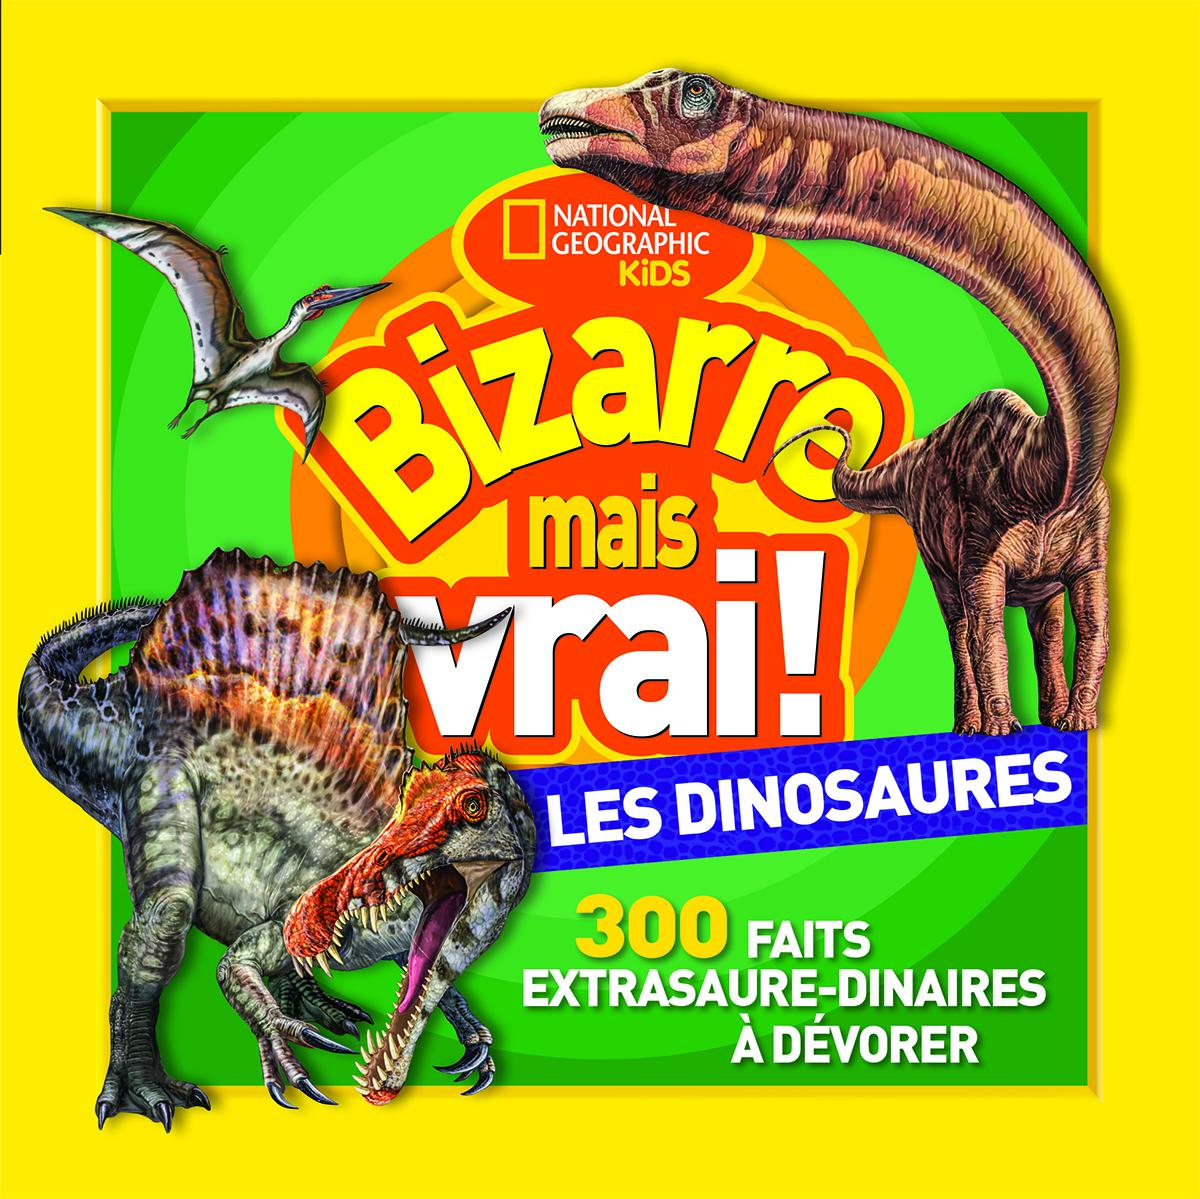 National Geographic Kids: Bizarre mais vrai! Les dinosaures